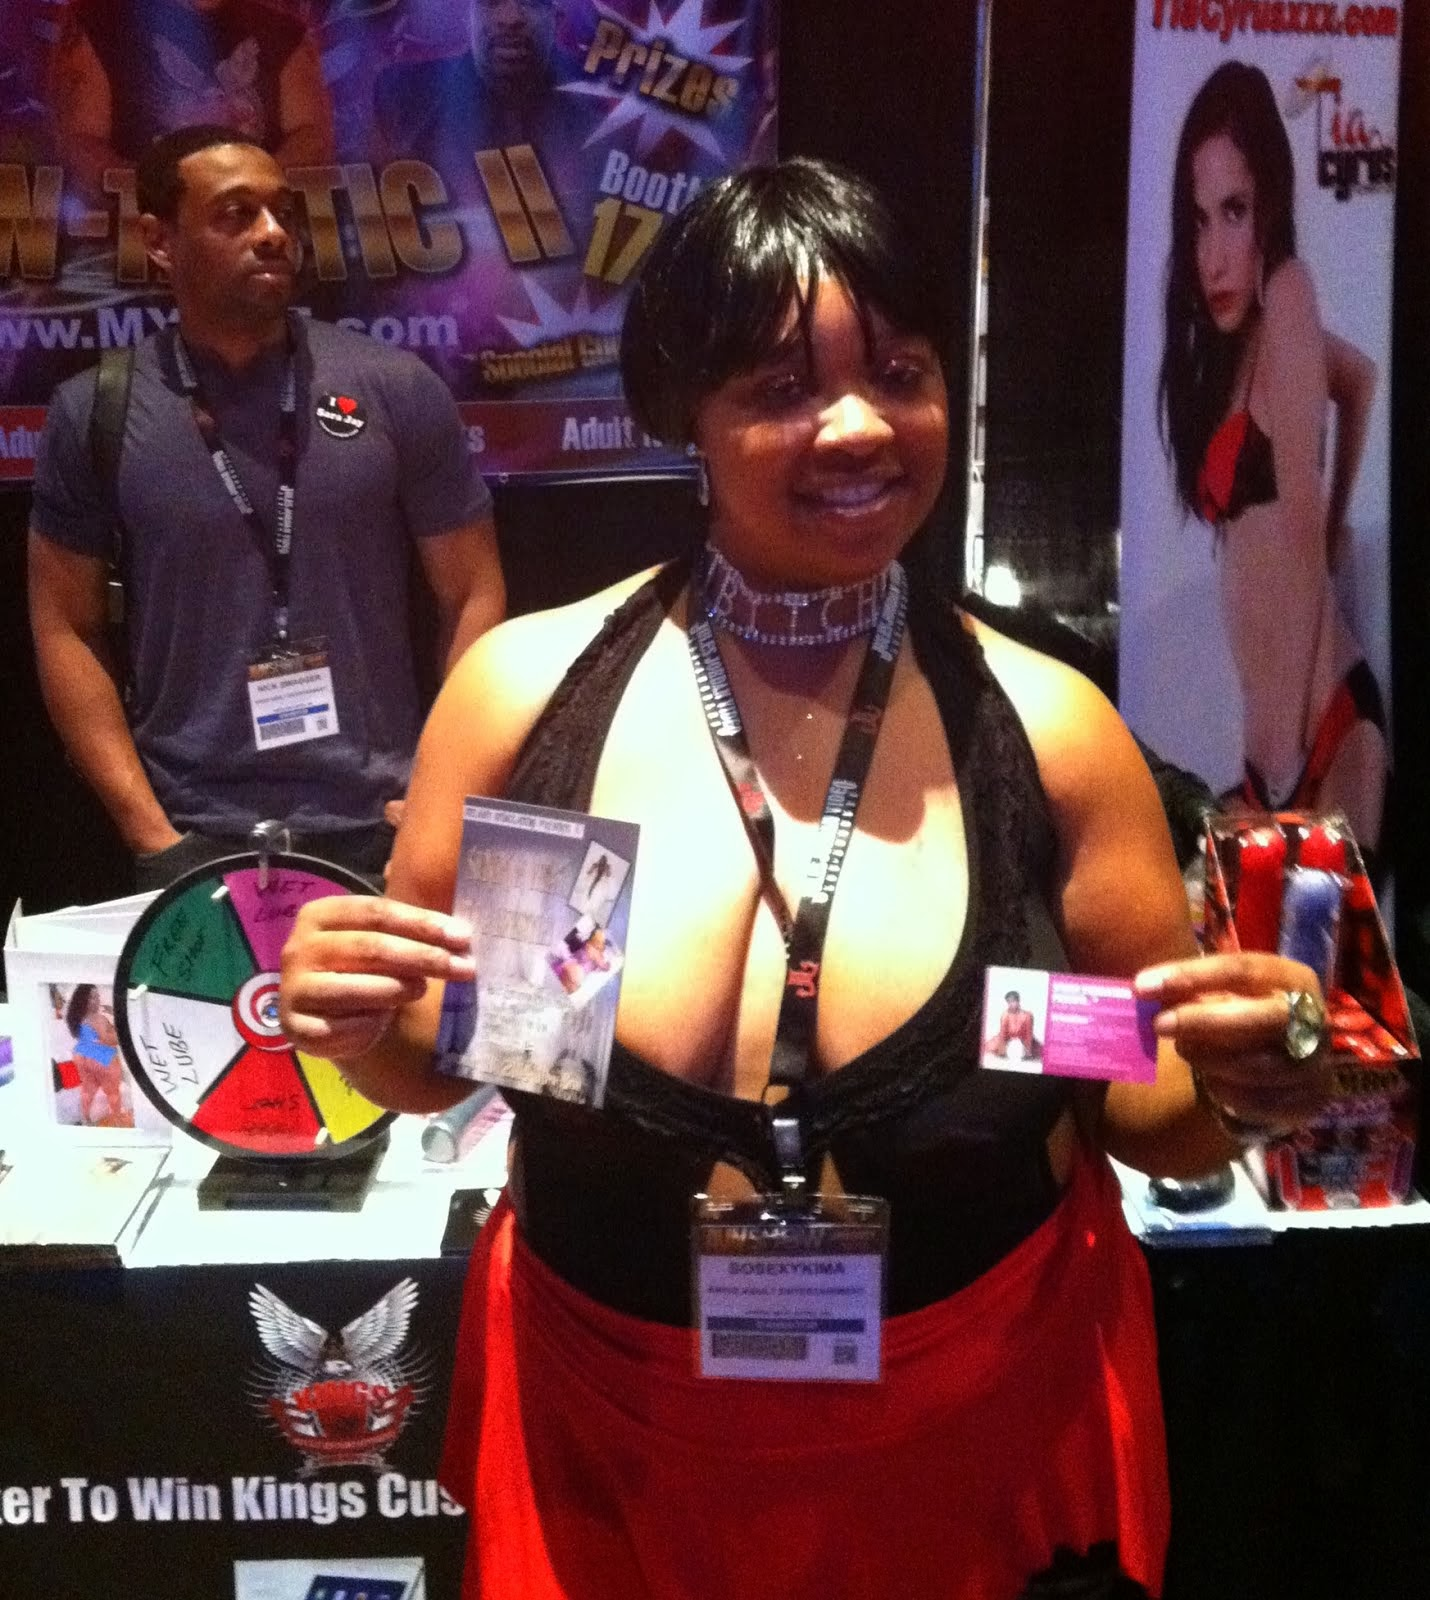 AT THE AVN EXPO LAS VEGAS 2014 KINGS ADULT ENTERTAINMENT BOOTH #1706